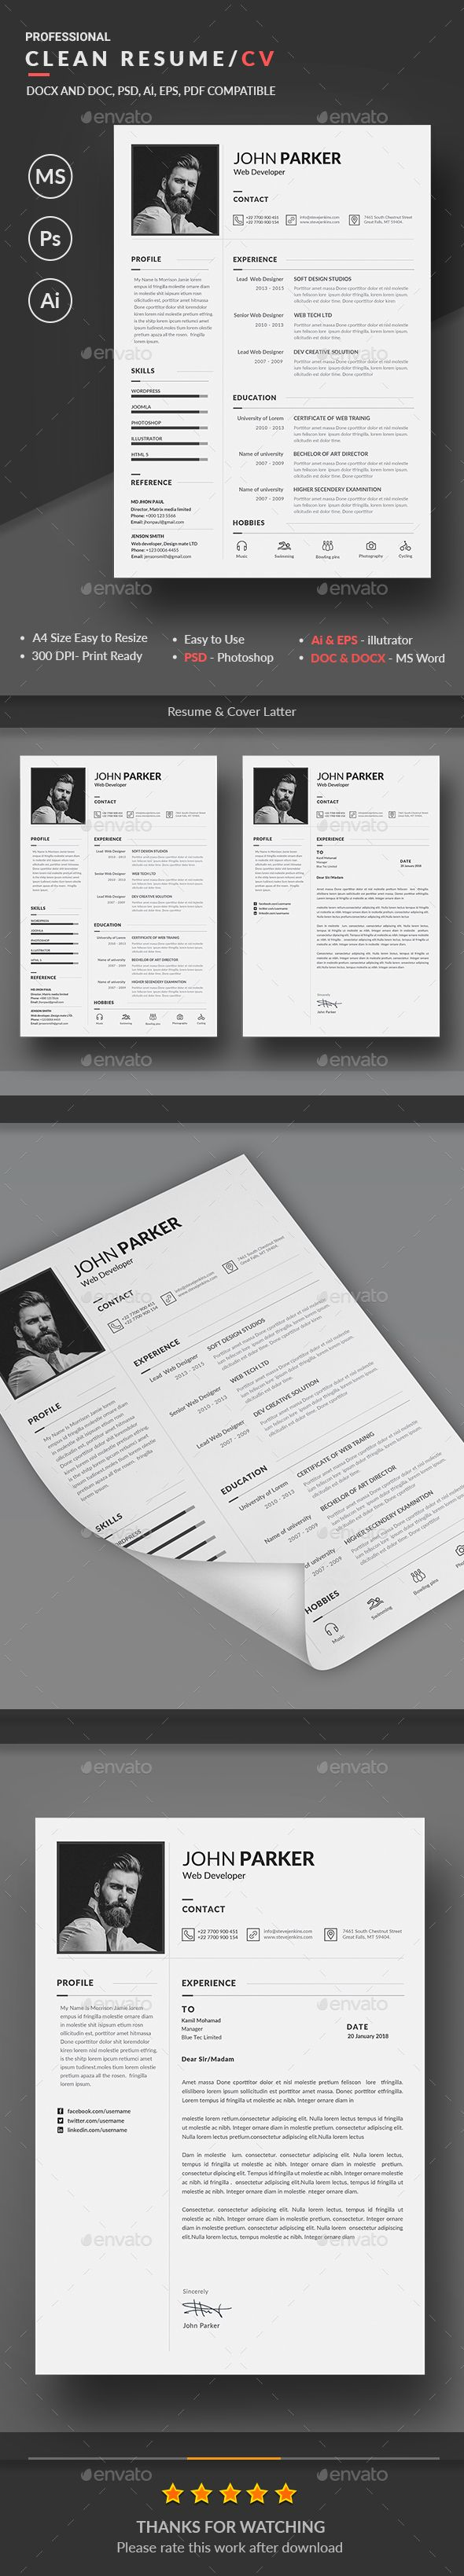 61 Best Ref CV Templates Images On Pinterest